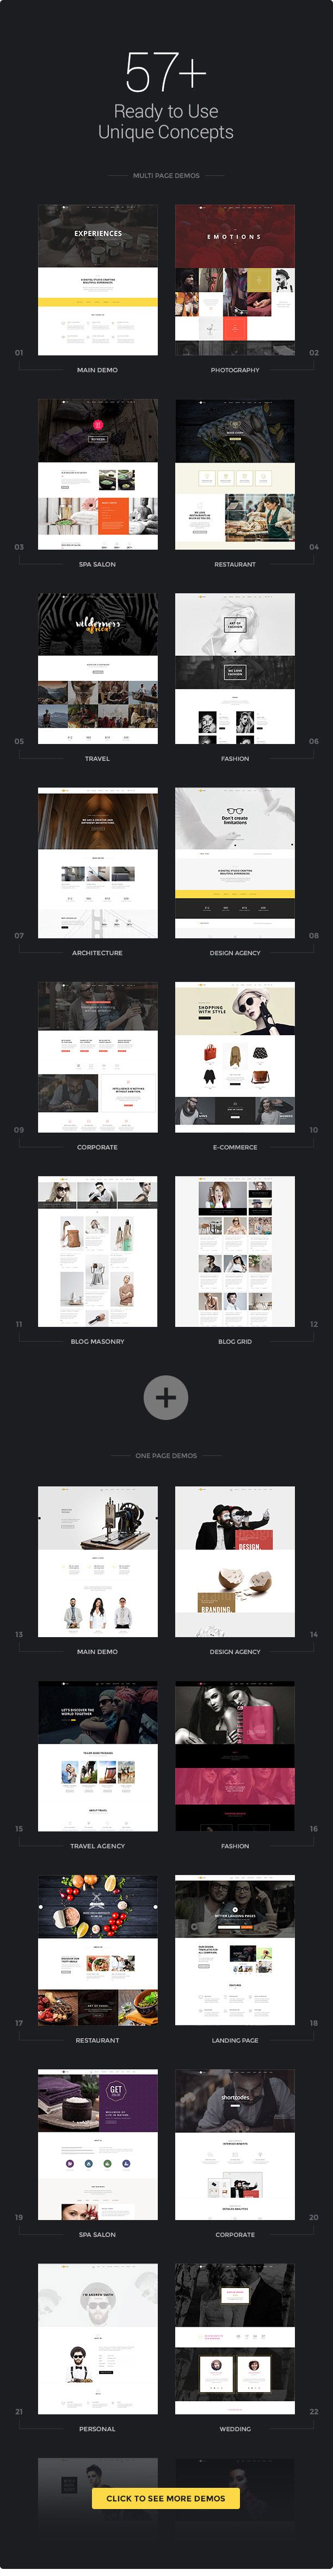 H-Code is a powerful, creative, responsive multi-purpose WordPress Theme perfect for business, creatives, online stores & ecommerce websites. Incl 6 months support.Creative Multi-purpose WordPress ...